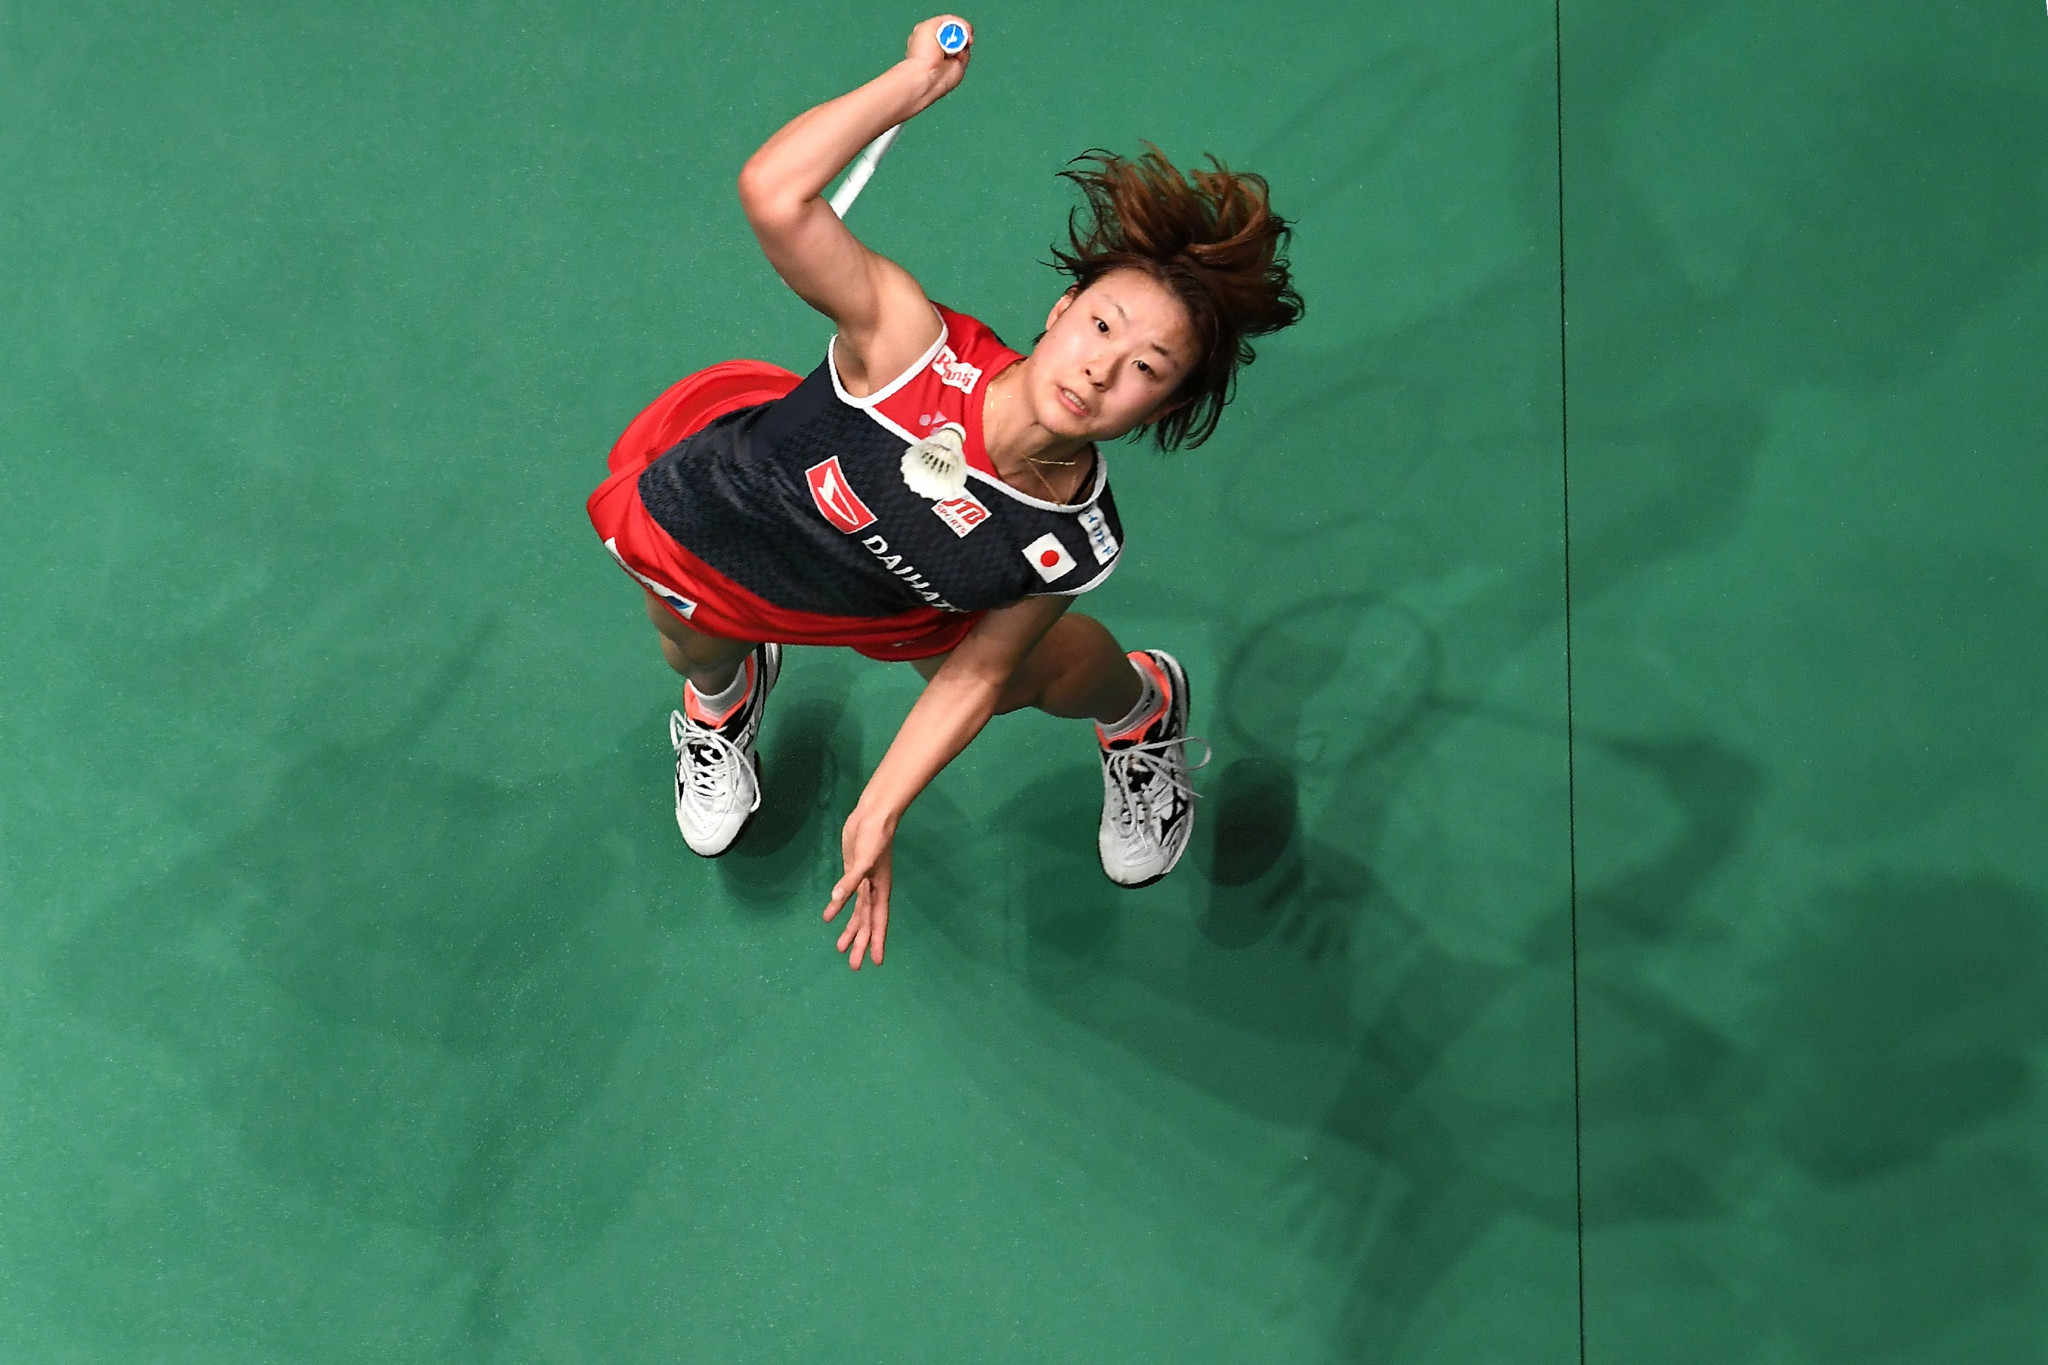 Japan's Nozomi Okuhara remains on course for success in the women's singles event ©Getty Images